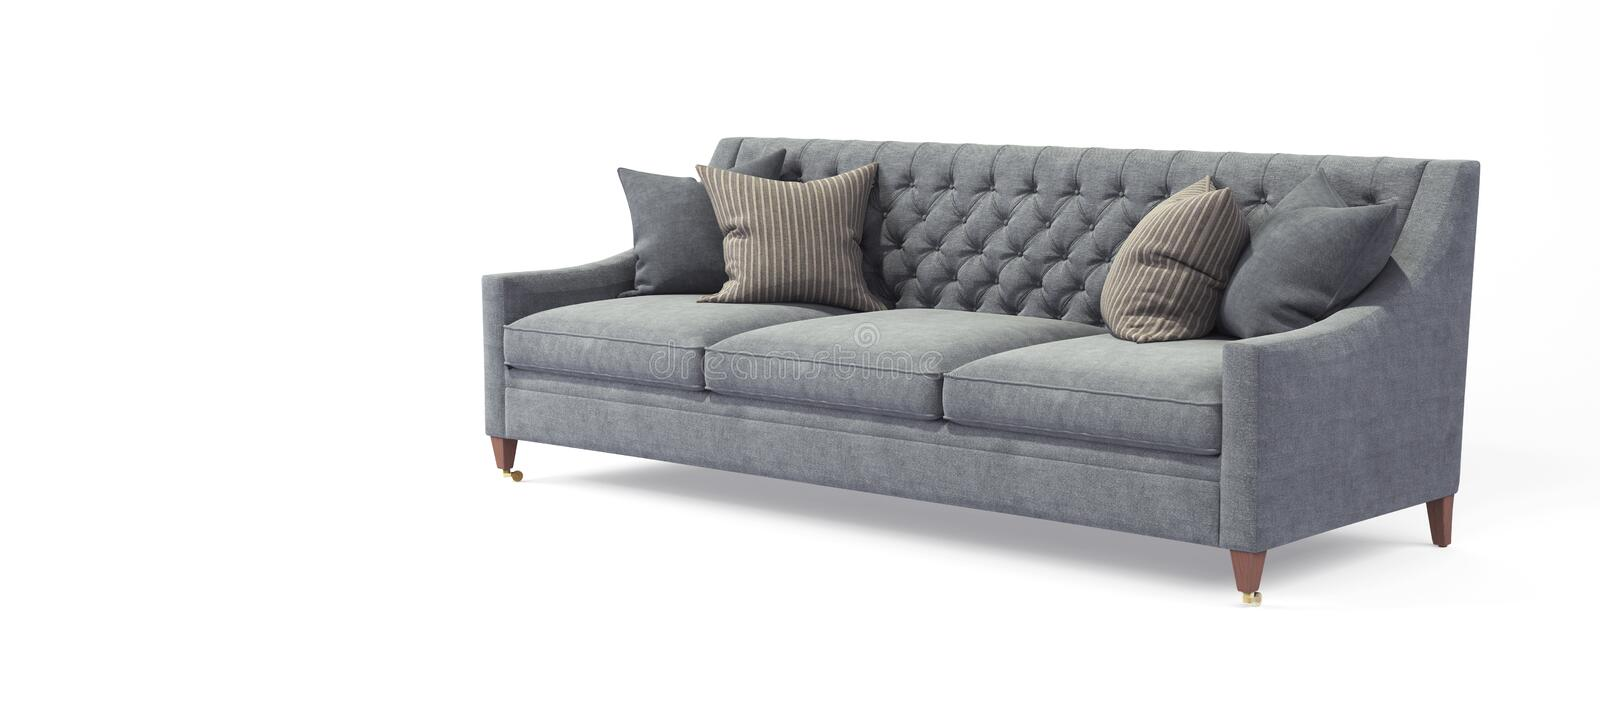 Modern scandinavian classic gray sofa with legs with pillows on isolated white background. Furniture, interior object royalty free stock photography